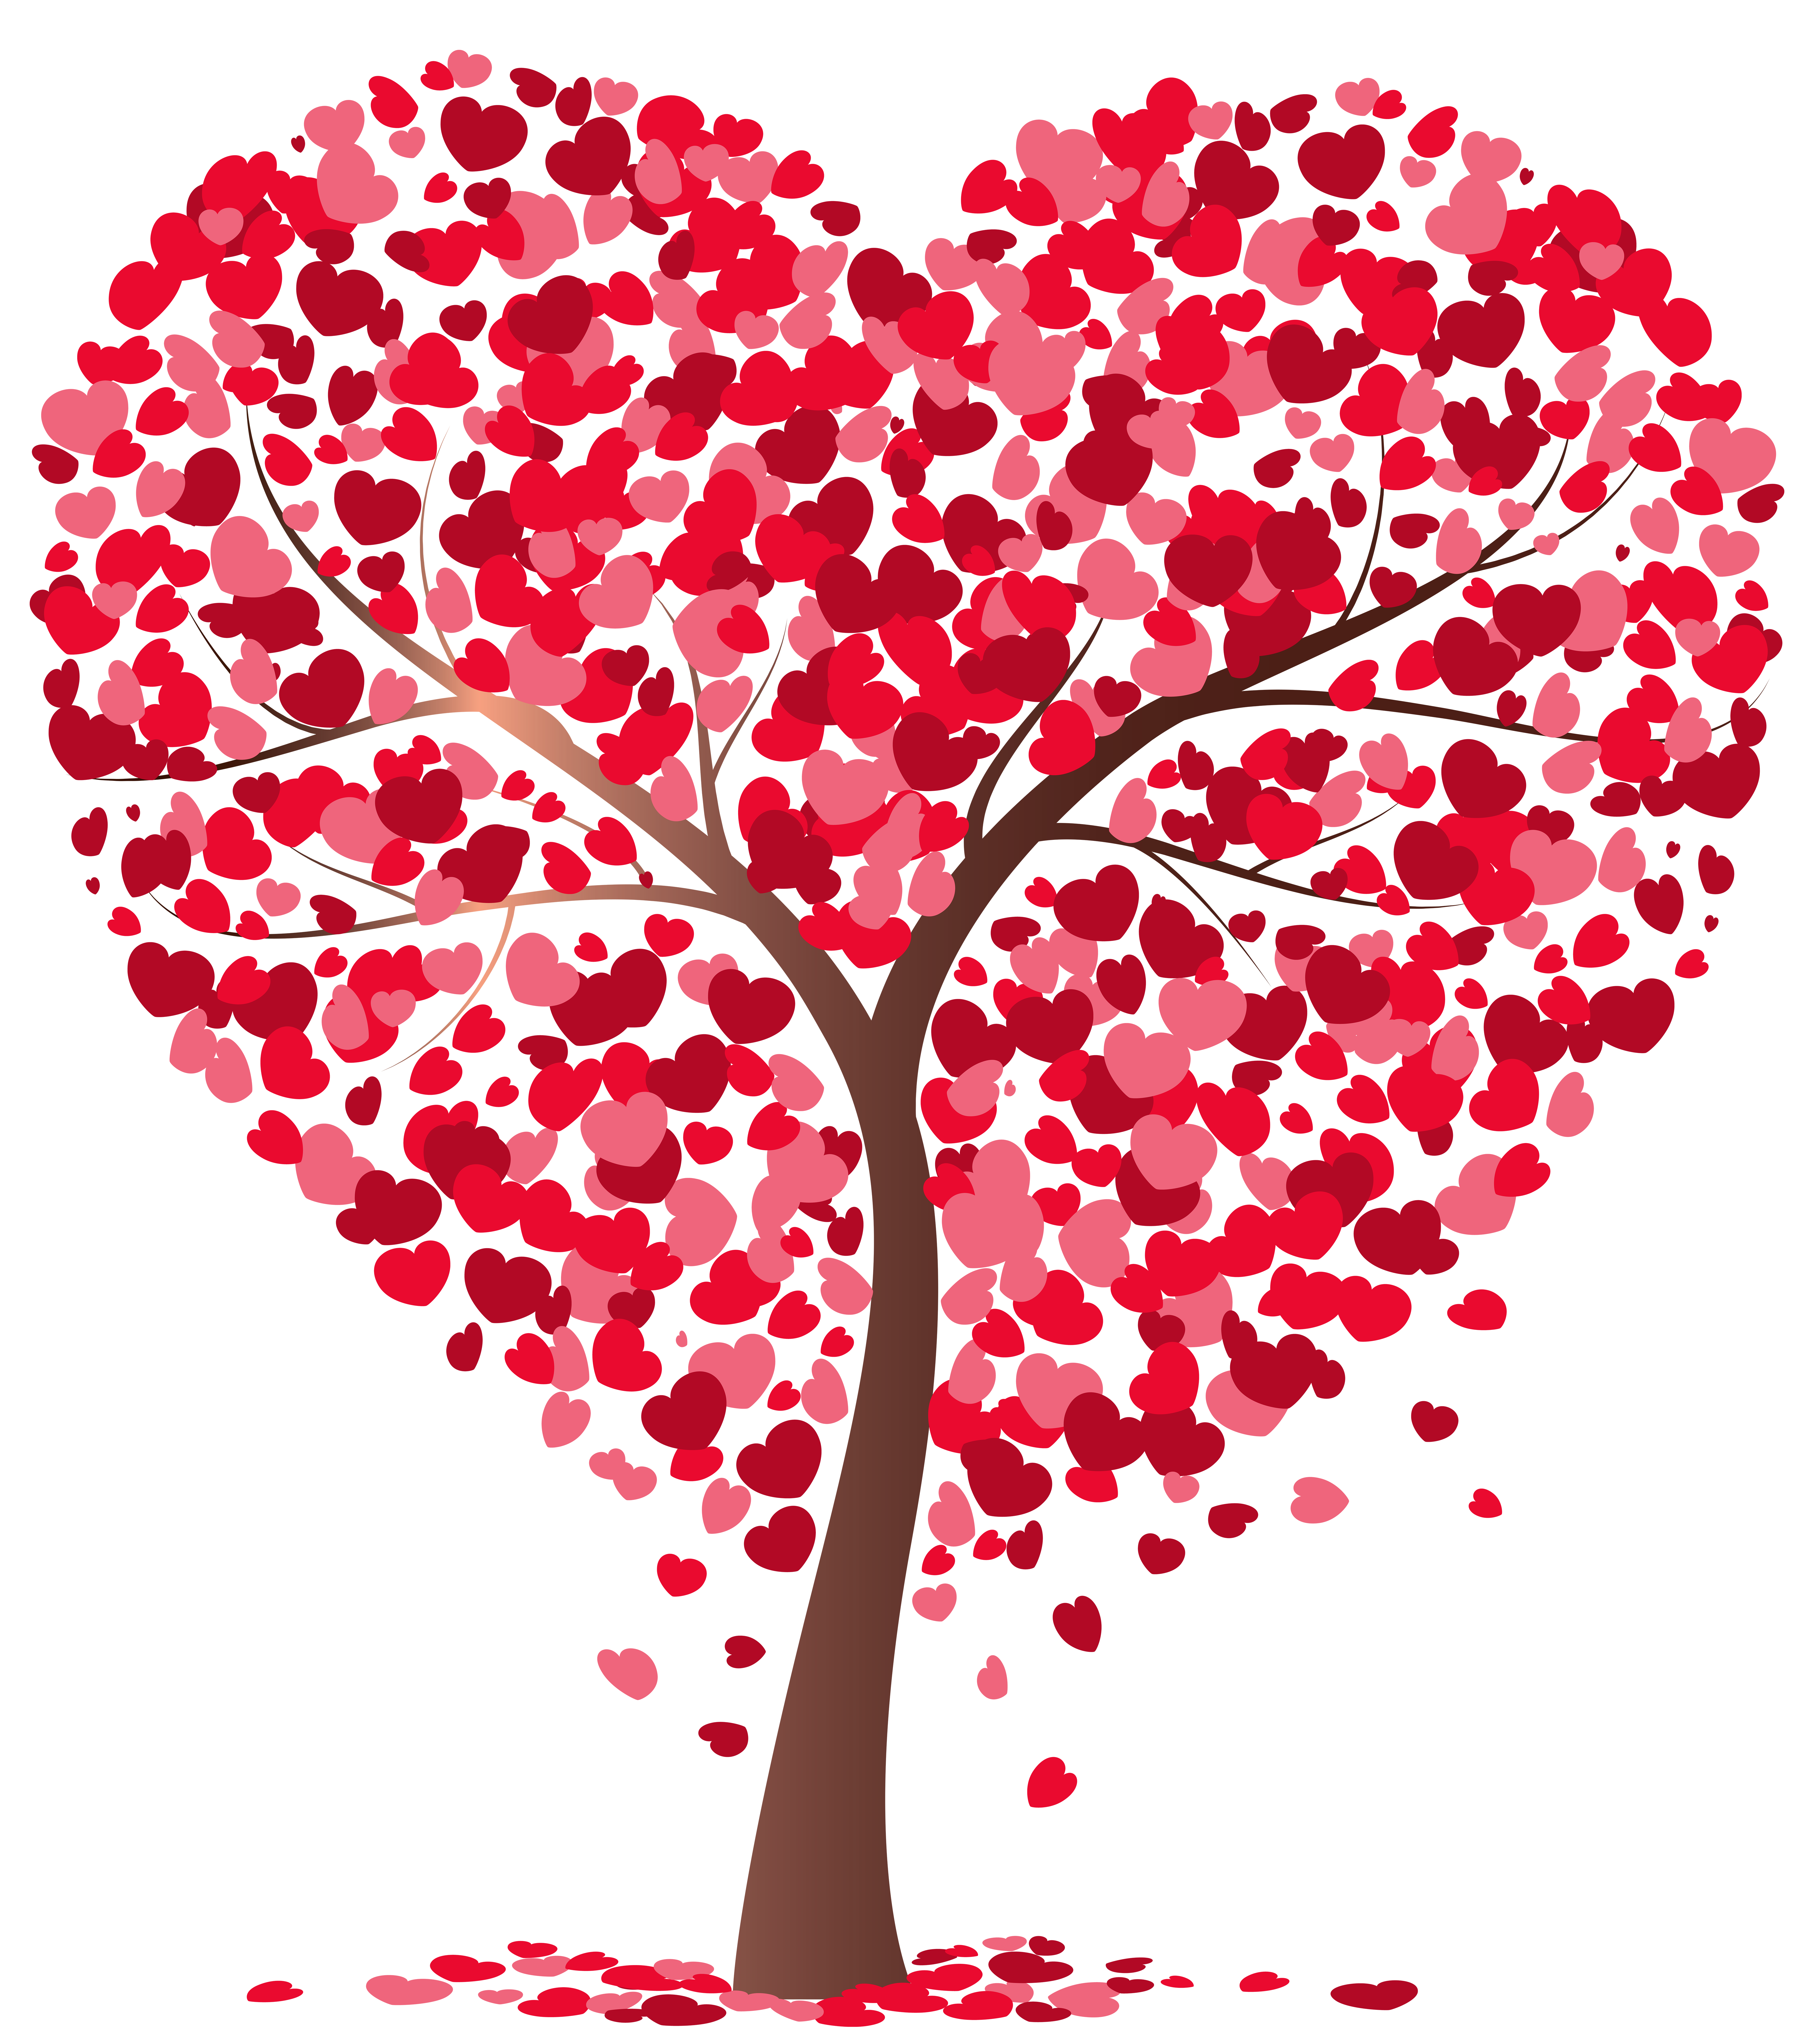 Tree clipart heart. Transparent png image gallery